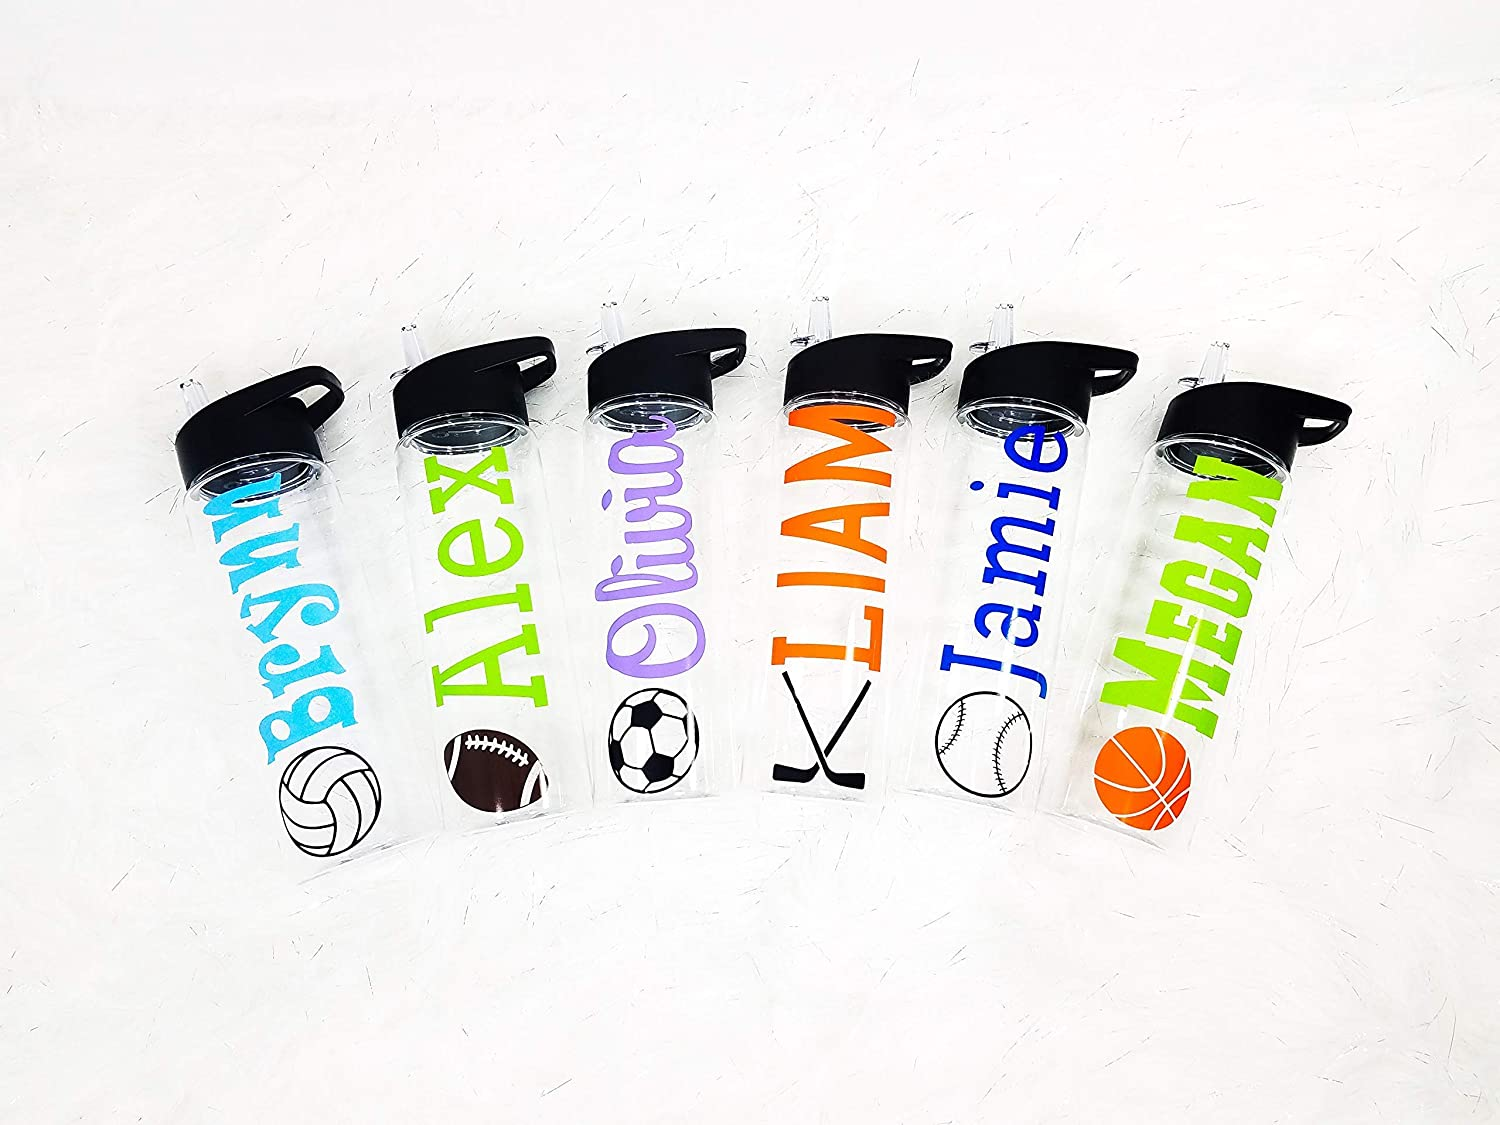 Kid Personalized Plastic Tumbler Sport Bottle Vinyl Decal Kid Friendly Water Bottle Plastic Sports Water Bottle with Name Wedding Party Gift Custom Water Bottle Bebas Personalized Water Bottle